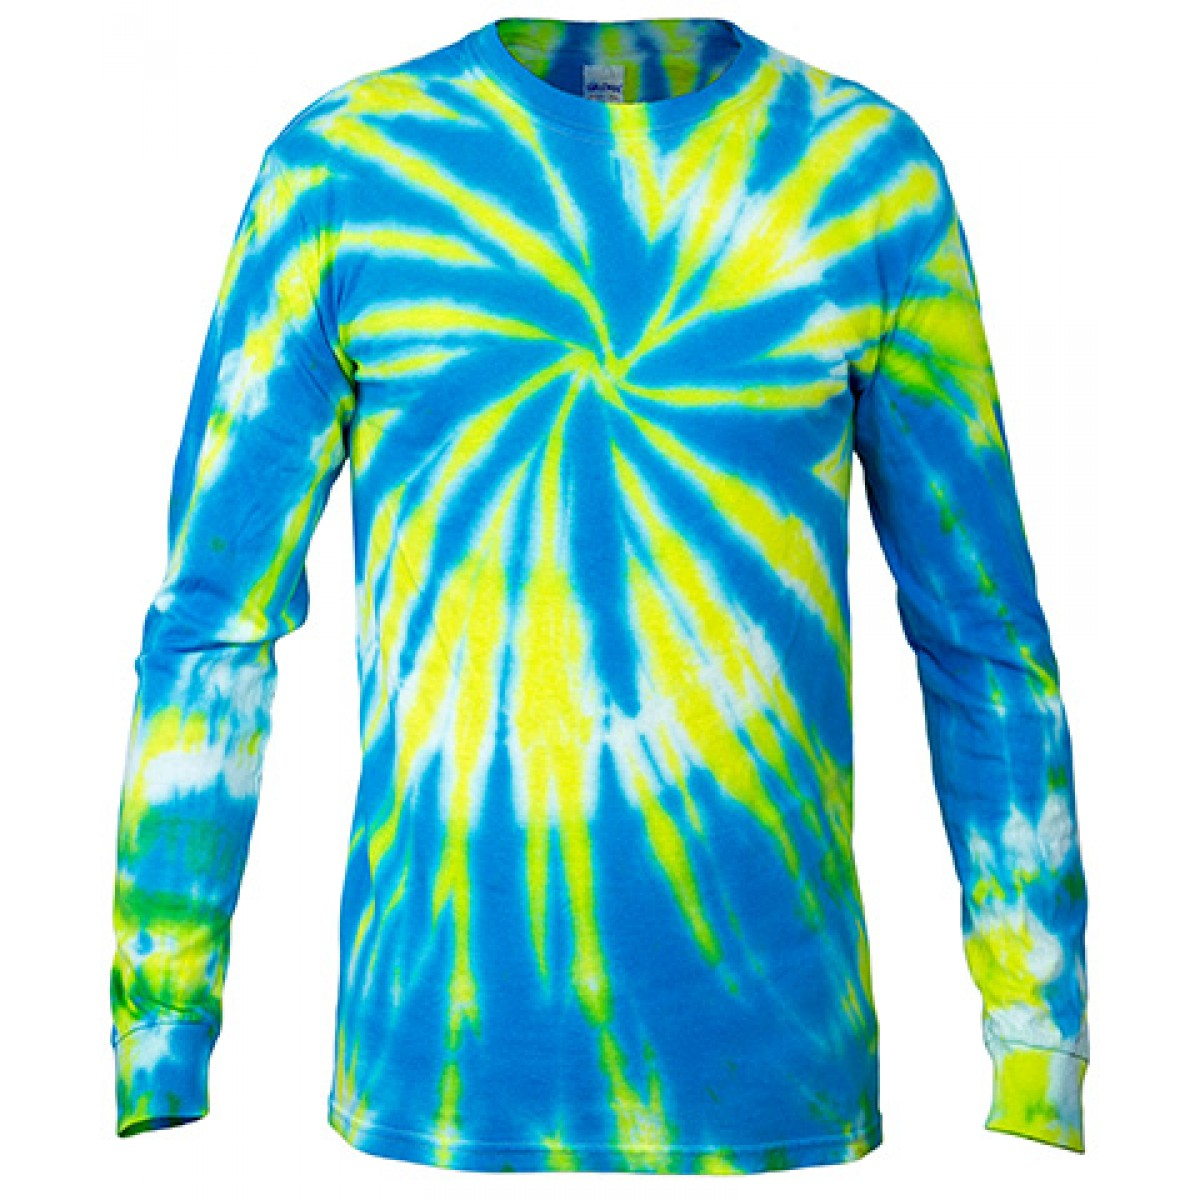 Multi Color Tie-Dye Long Sleeve Shirt -Blue-YL